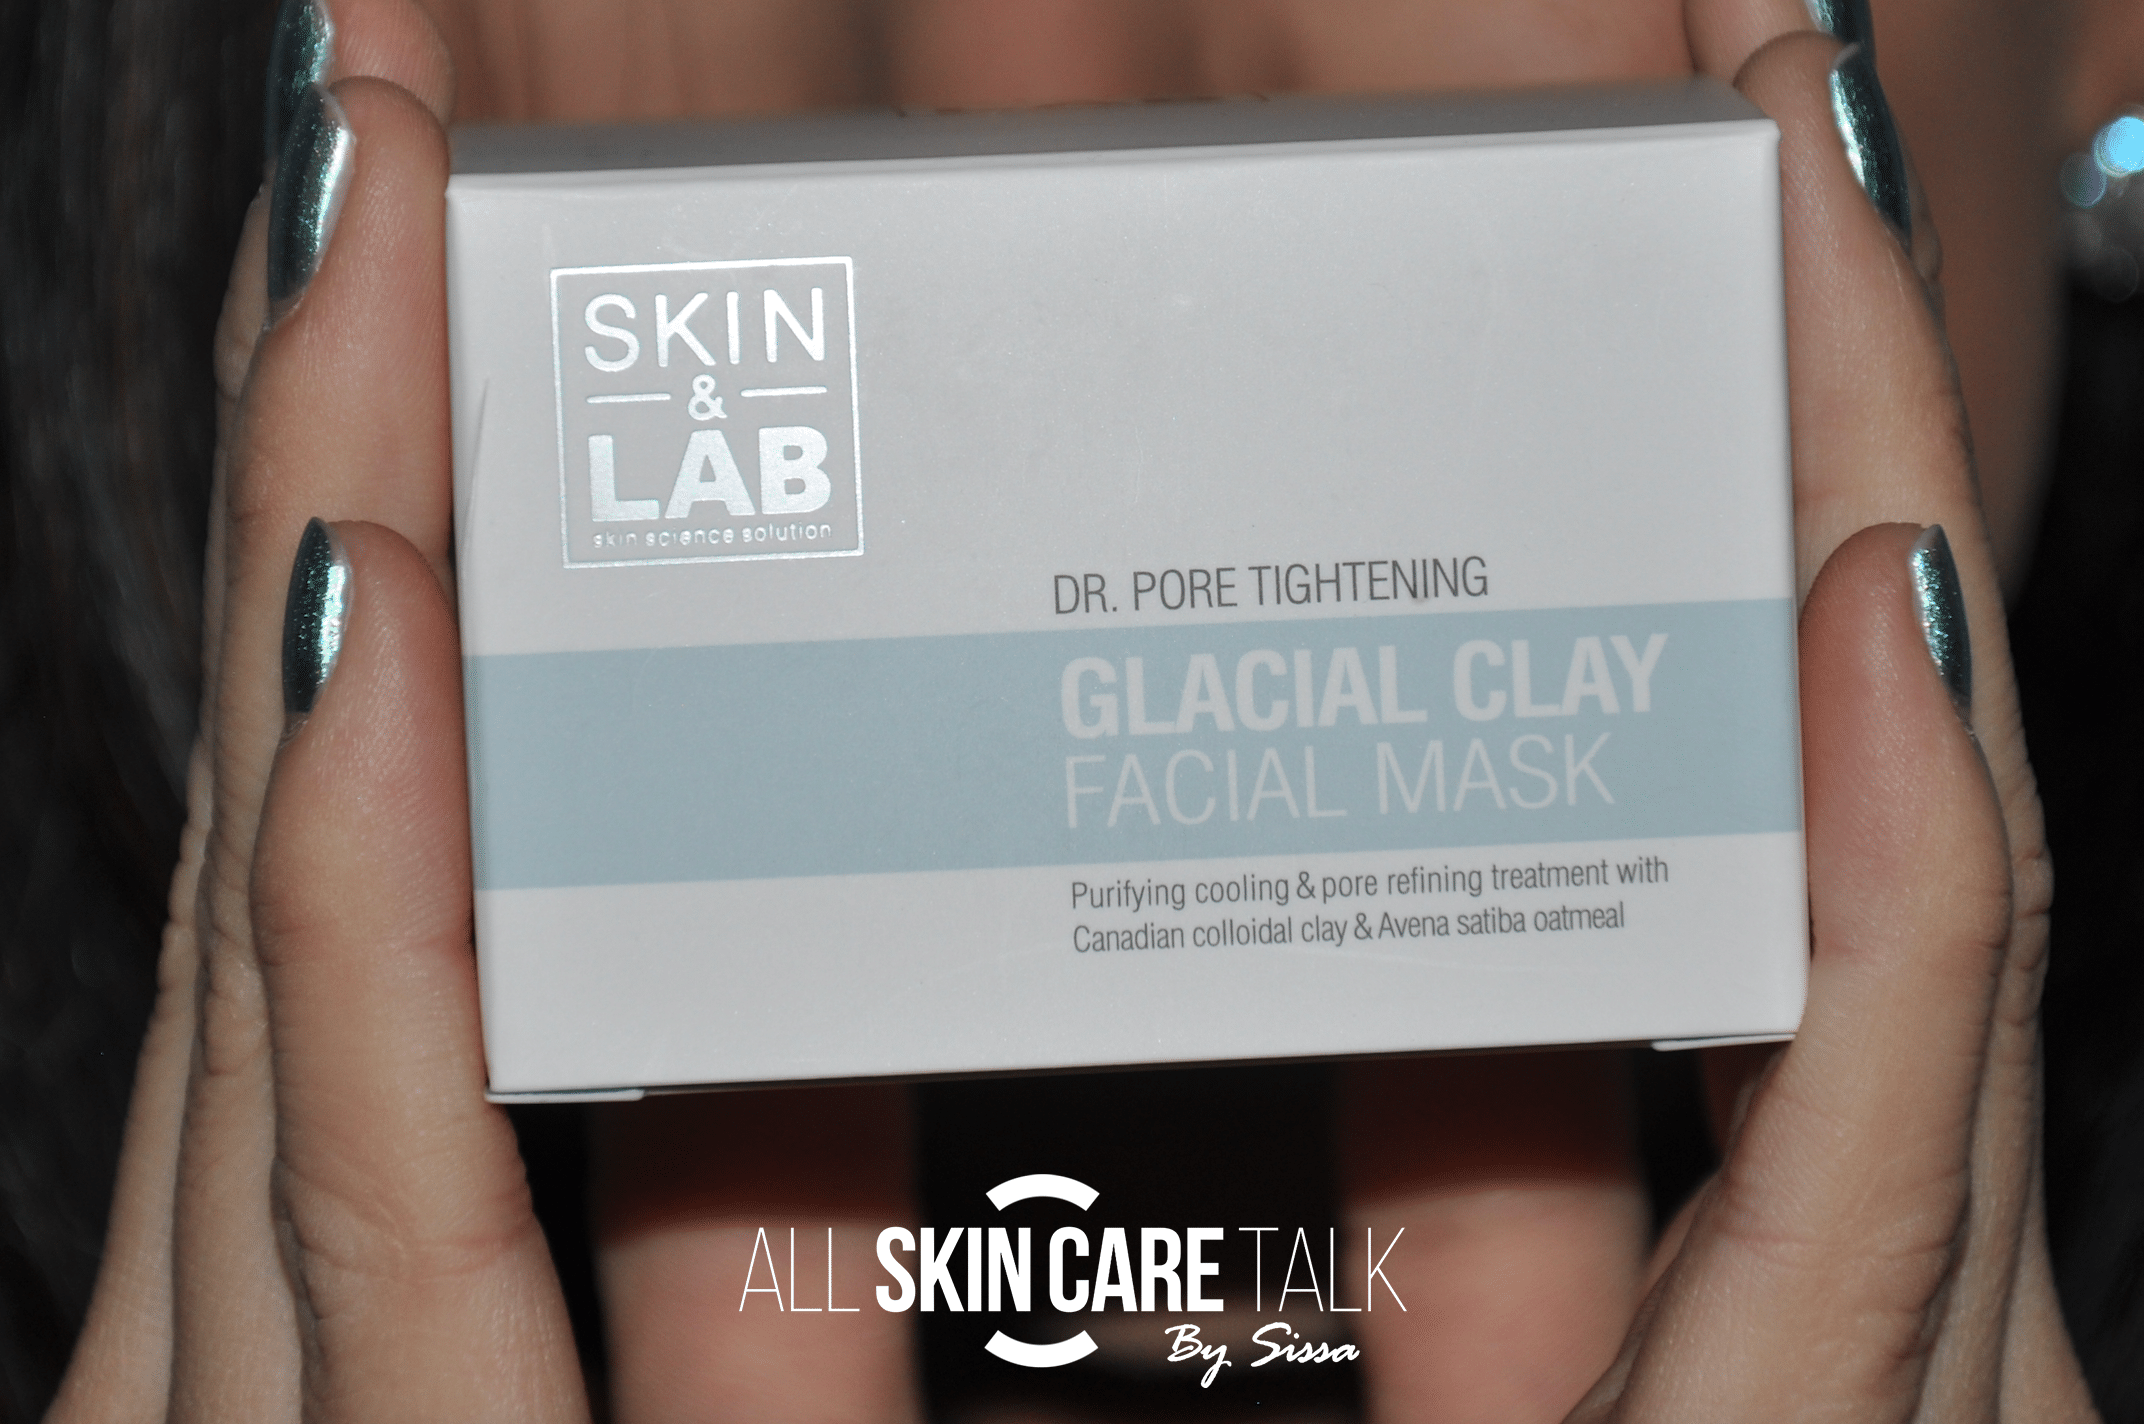 Dr. Pore Tightening Glacial Clay Mask Packaging